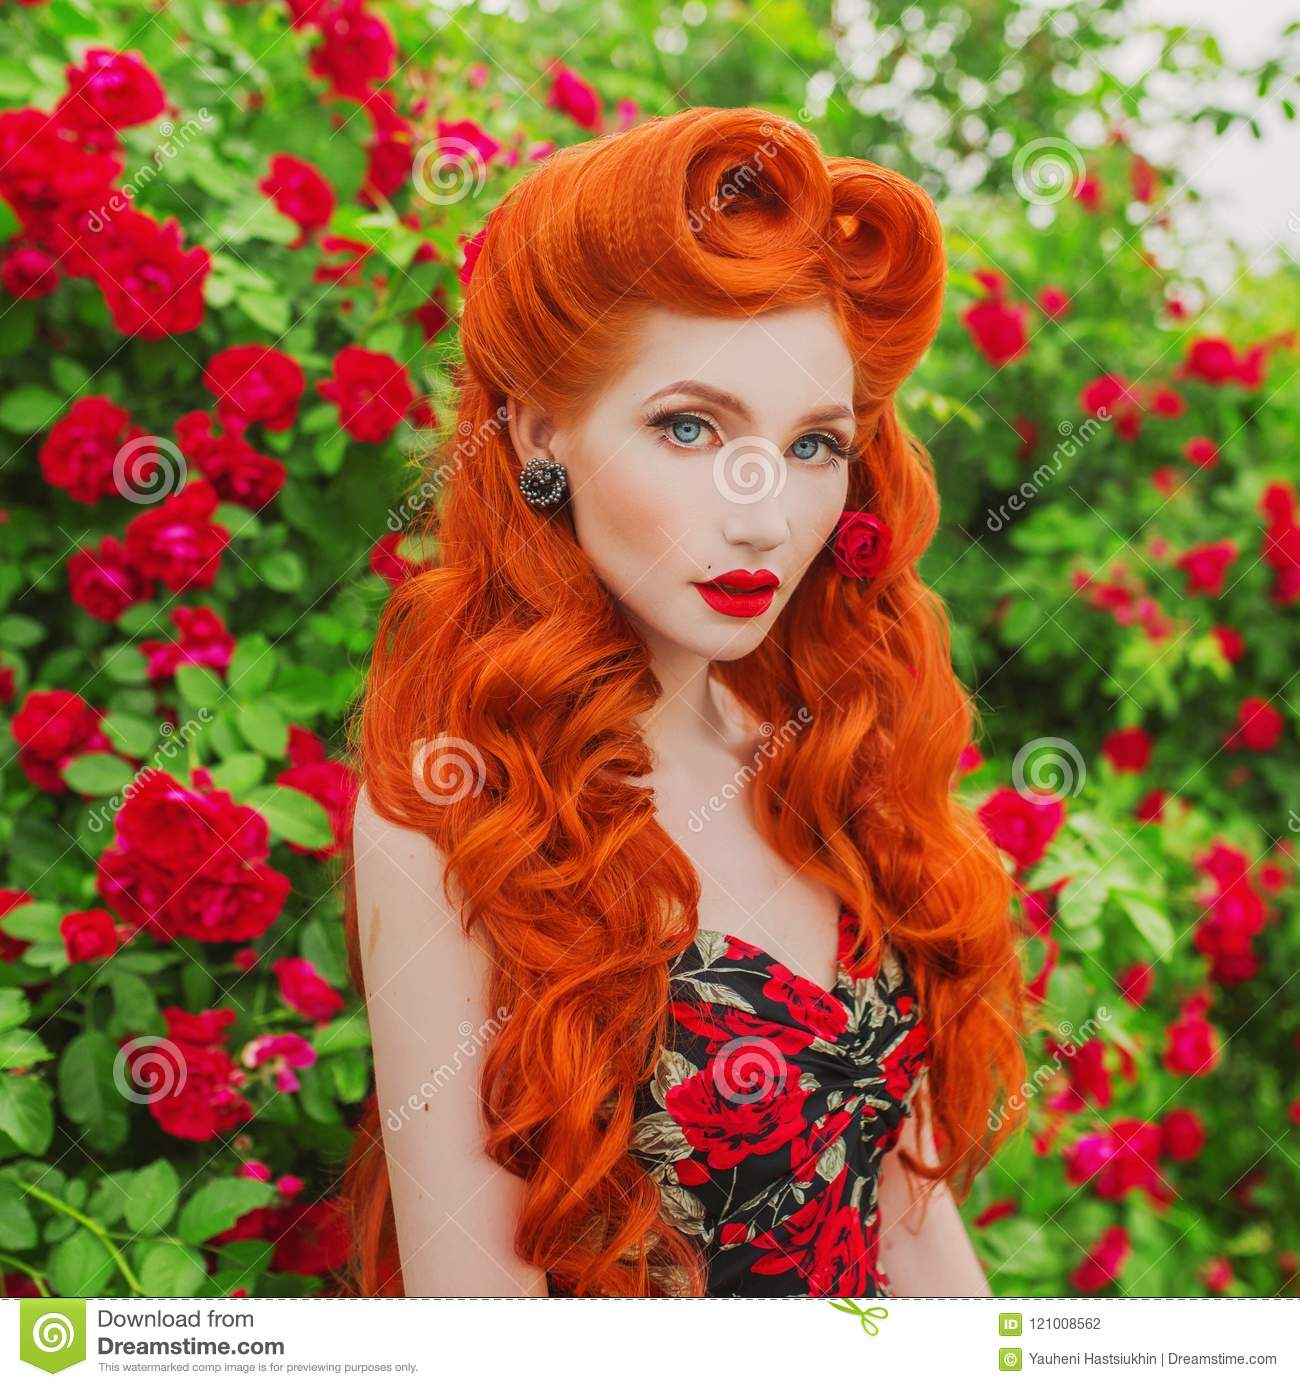 Valentines Day background. Brilliant retro girl with red lips in stylish dress with print of roses in beautiful summer garden. Red